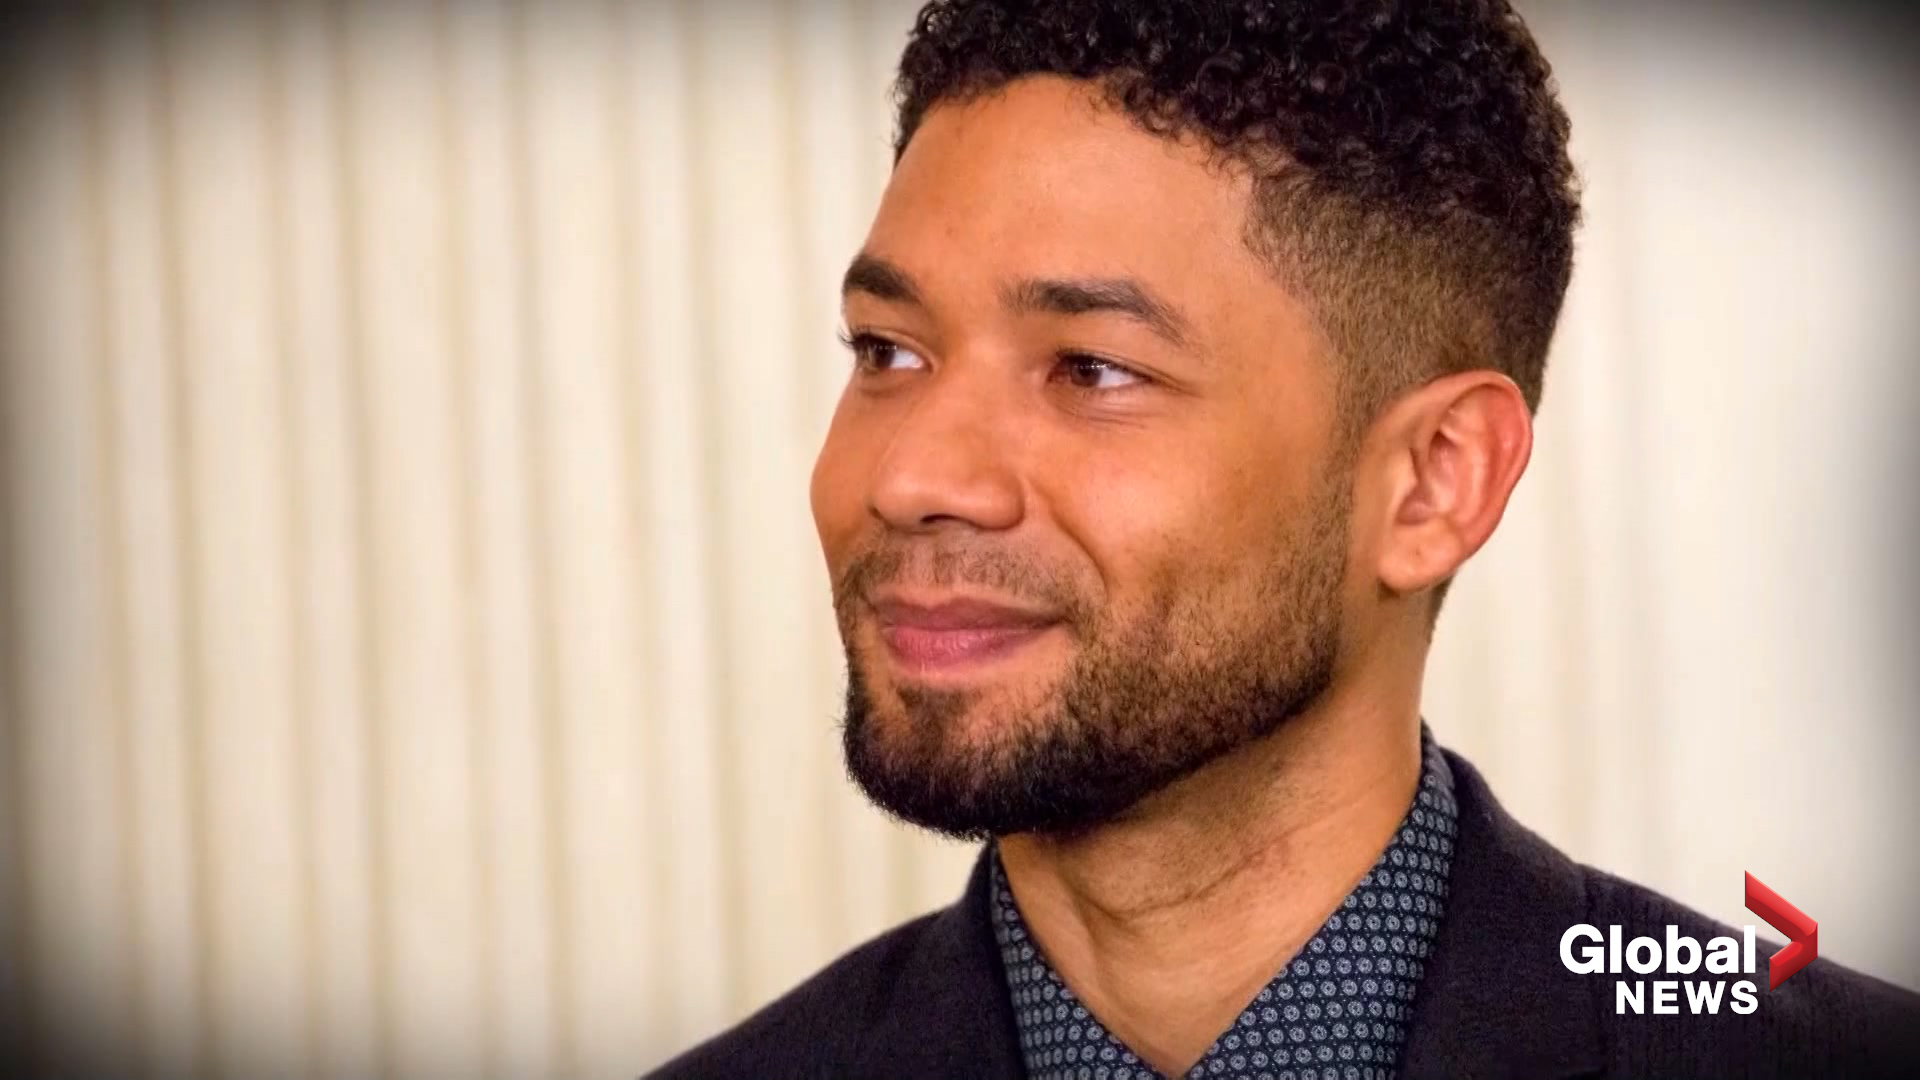 Nigerian Brothers Tell Police Jussie Smollett Paid Them to Stage Attack